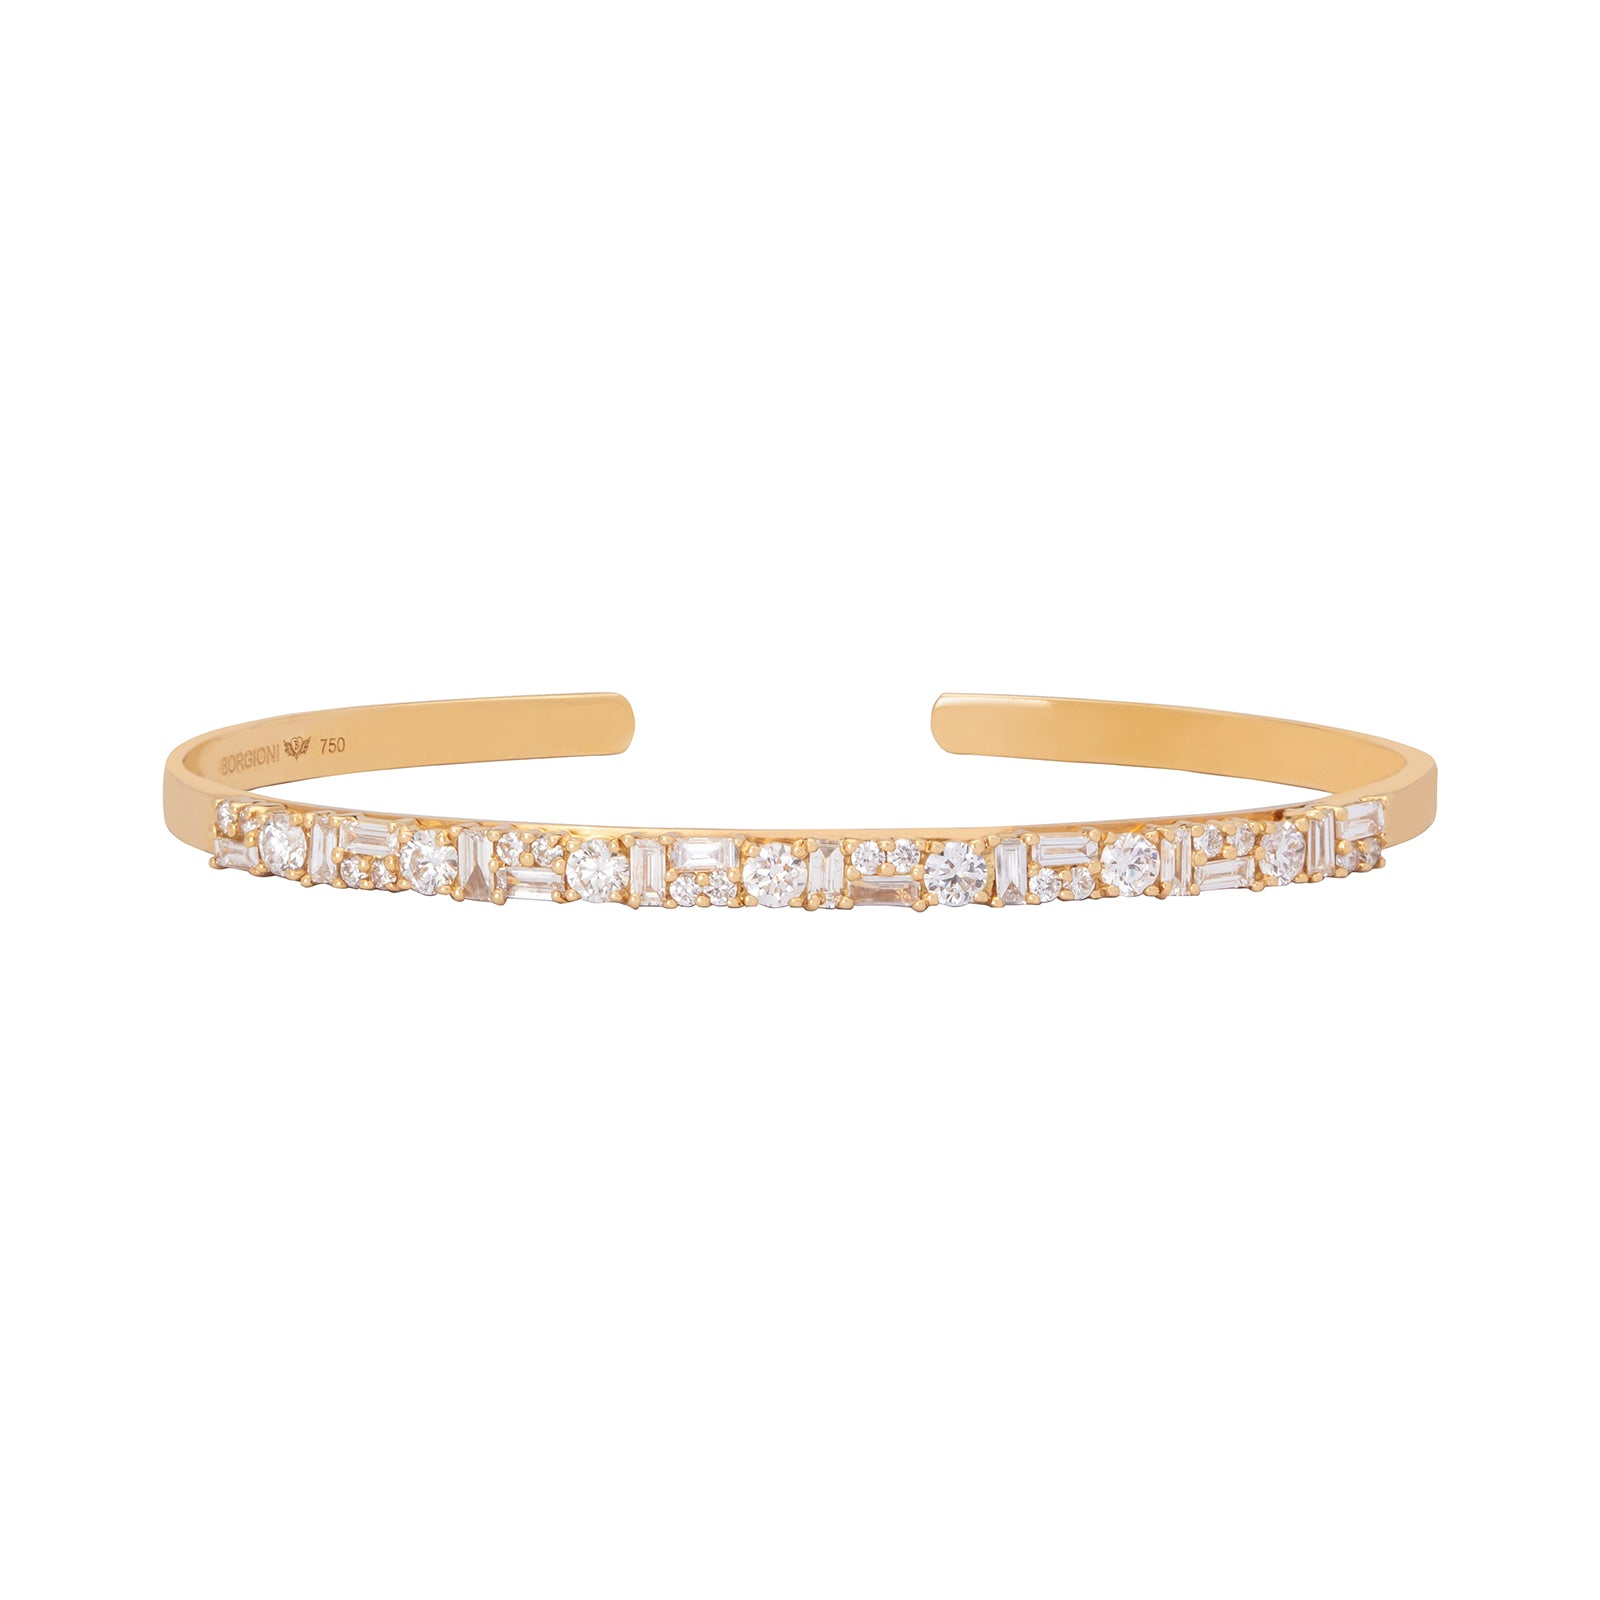 Borgioni Diamond Hinged Bangle - Gold - Bracelets - Broken English Jewelry